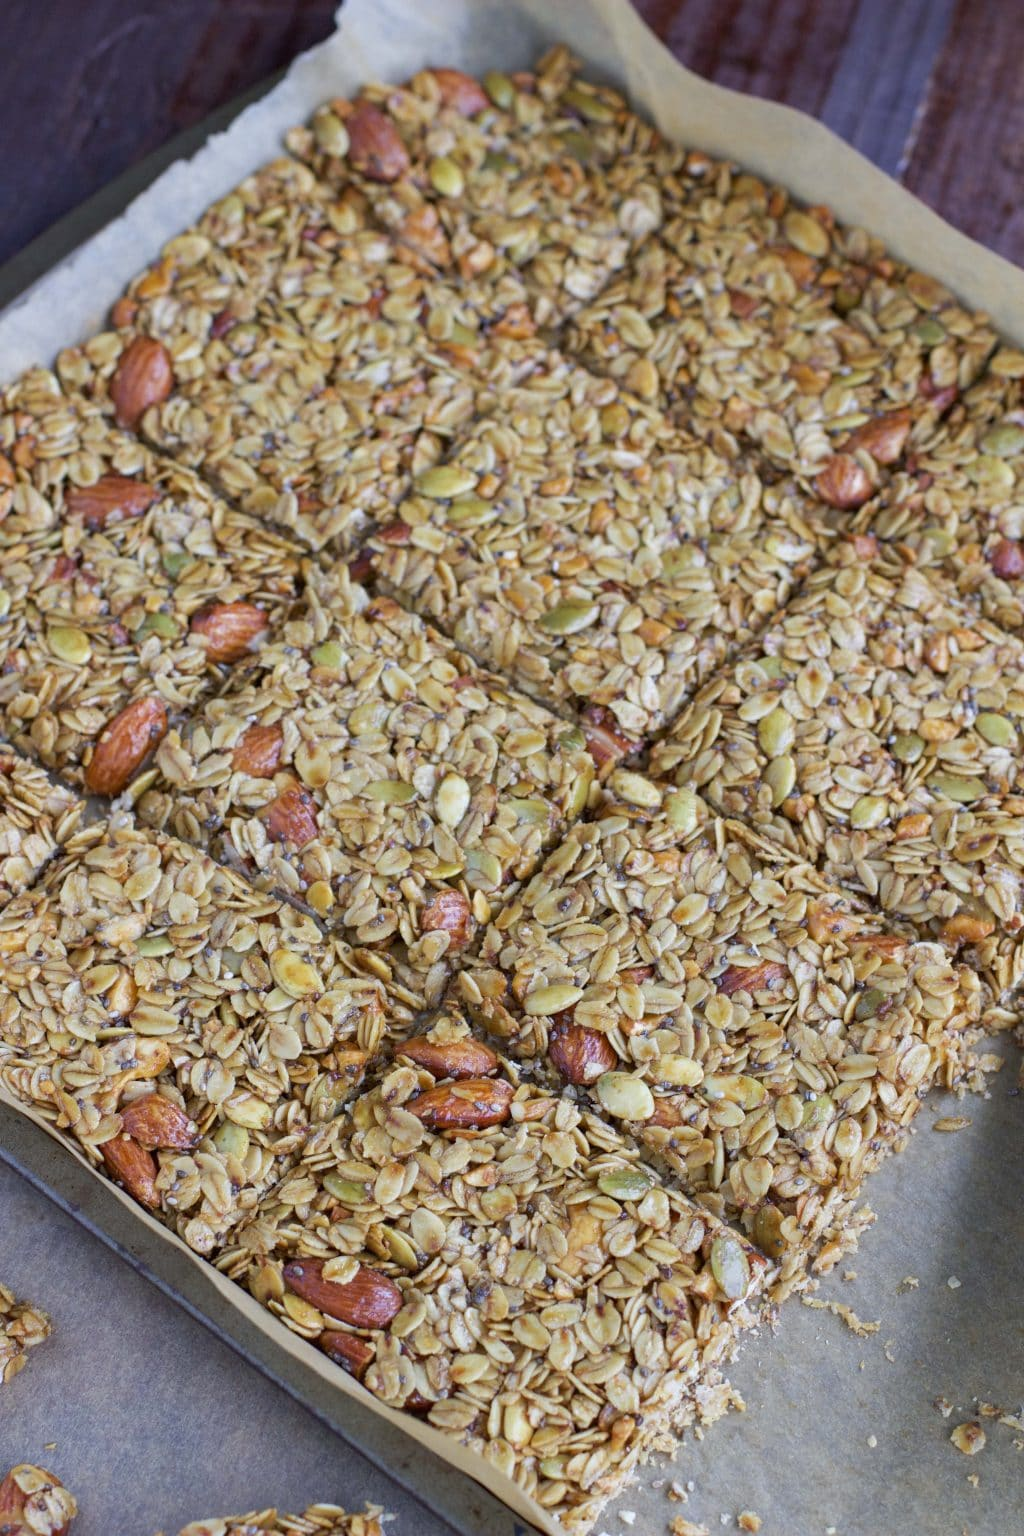 A tray of vegan granola bars on a parchment lined tray.